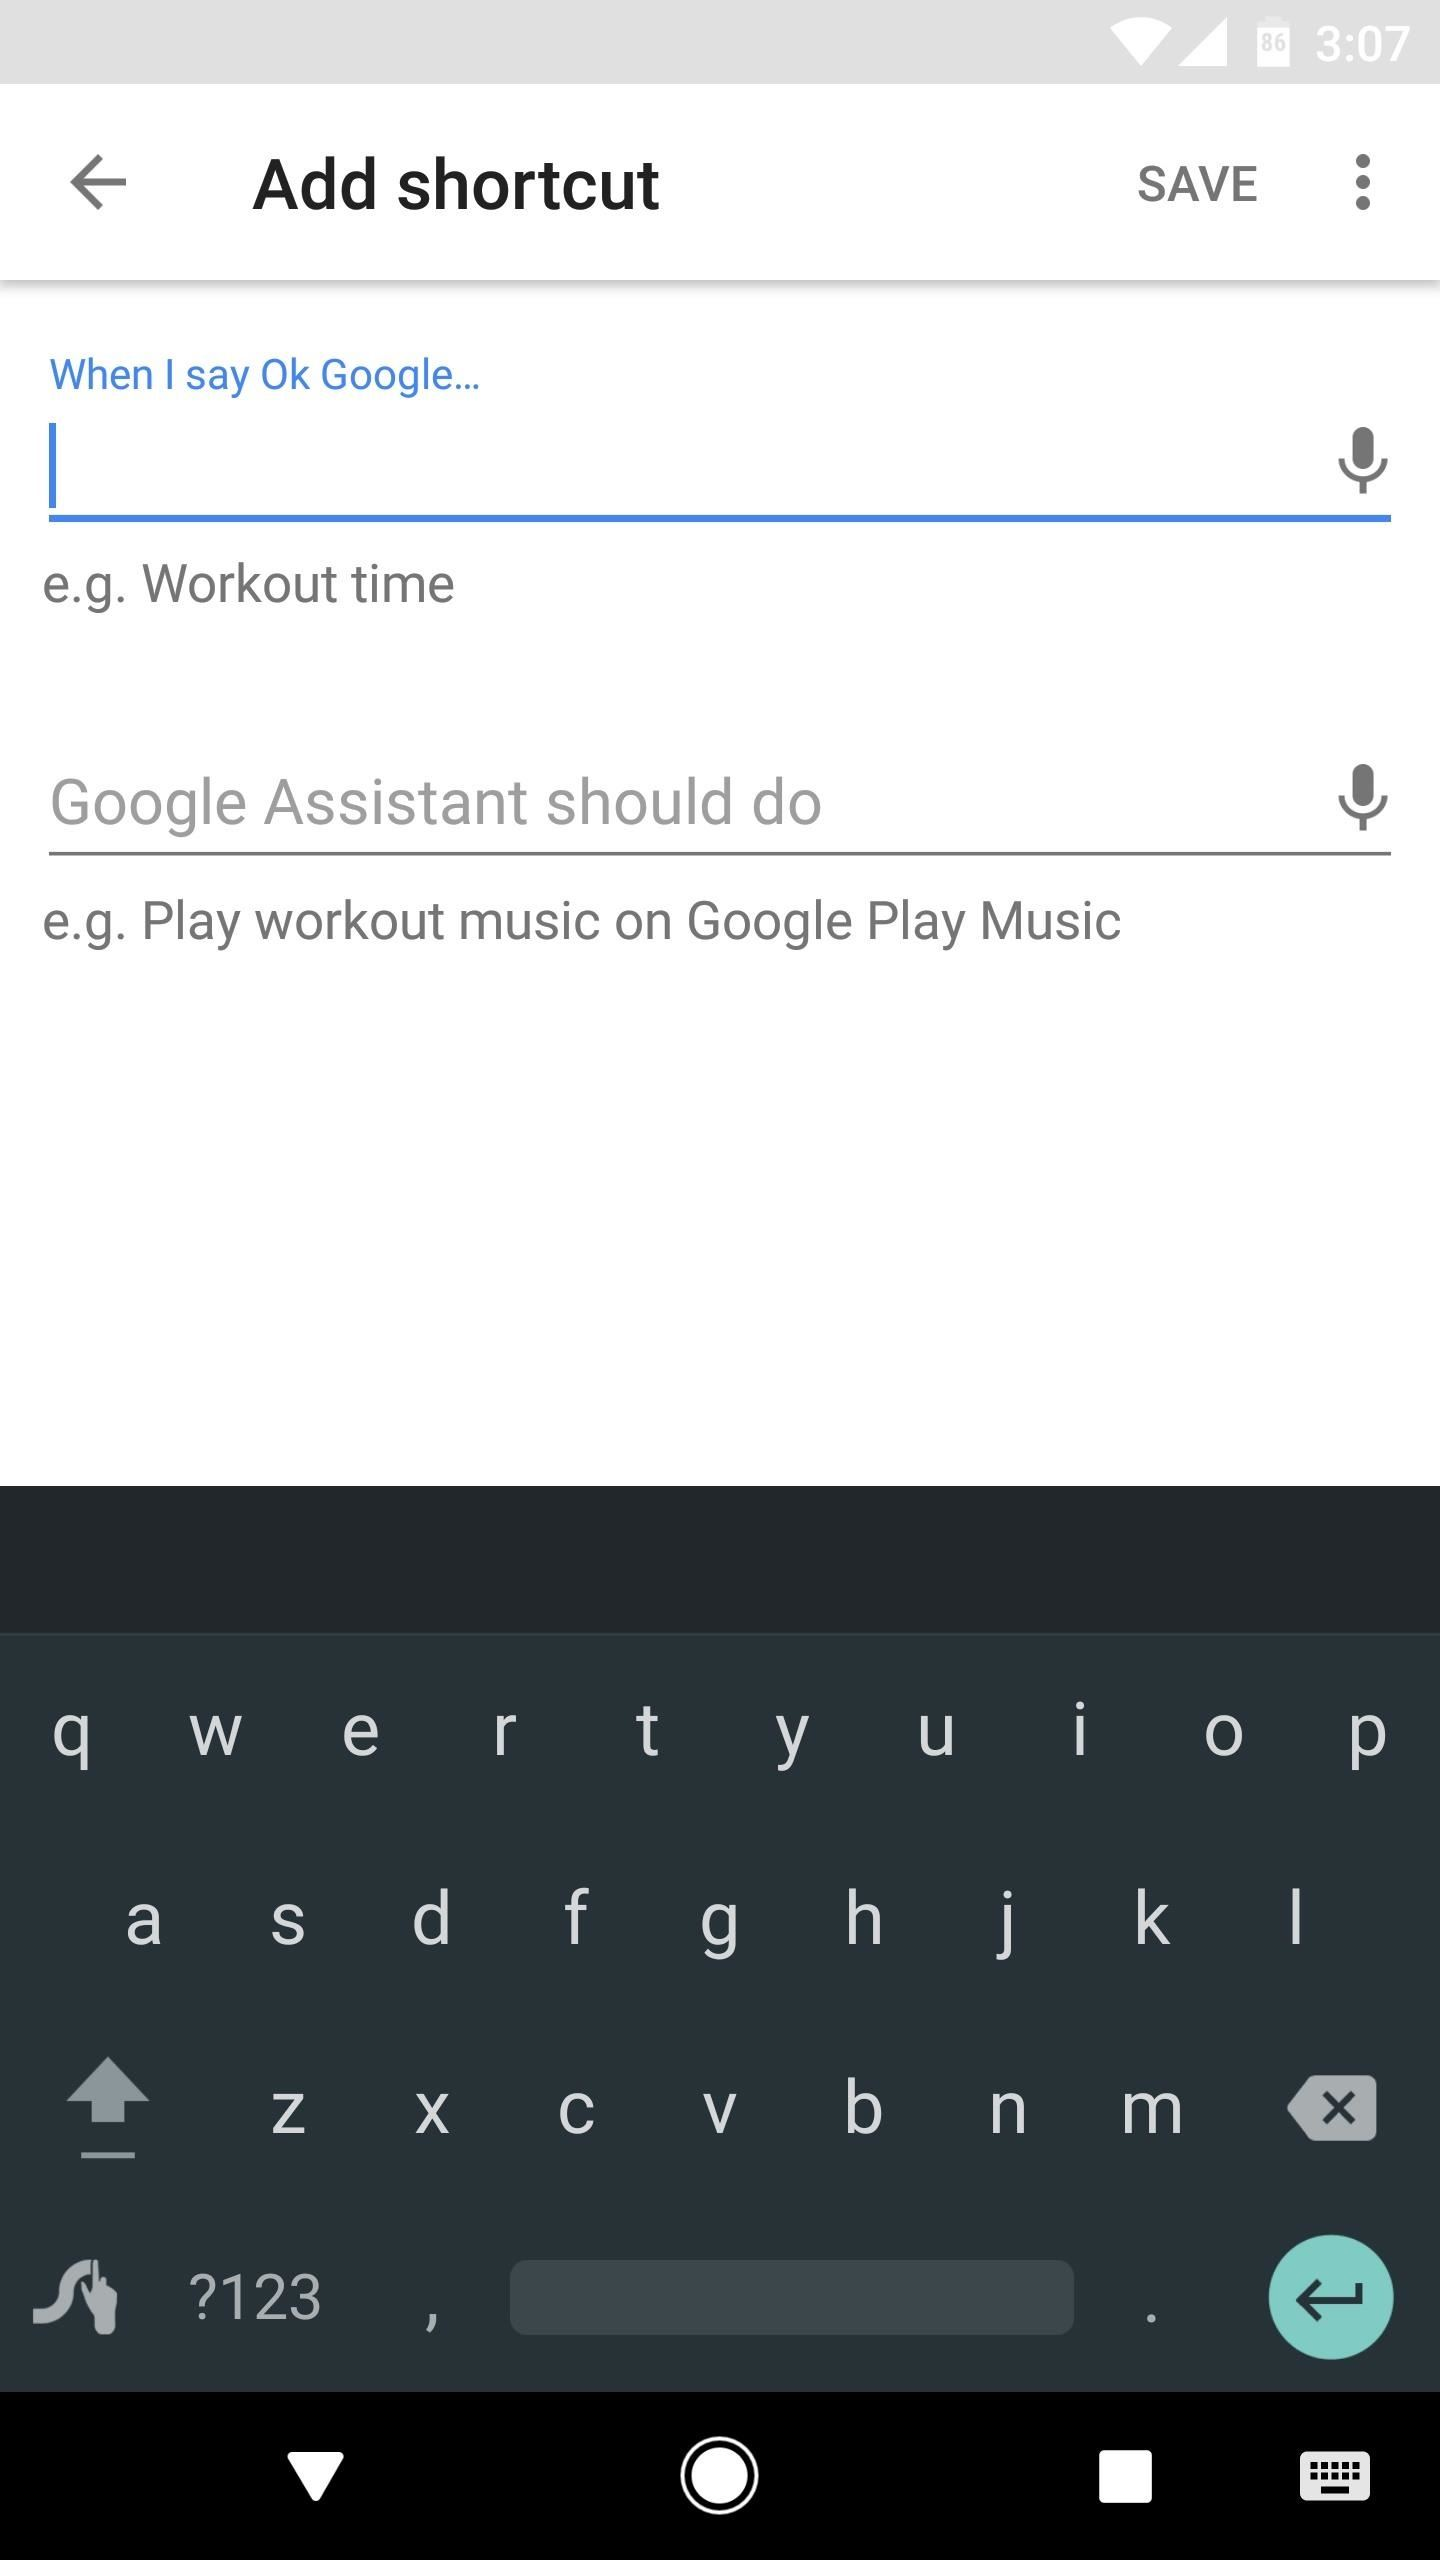 Google Assistant 101: How to Set Up Voice Command Shortcuts